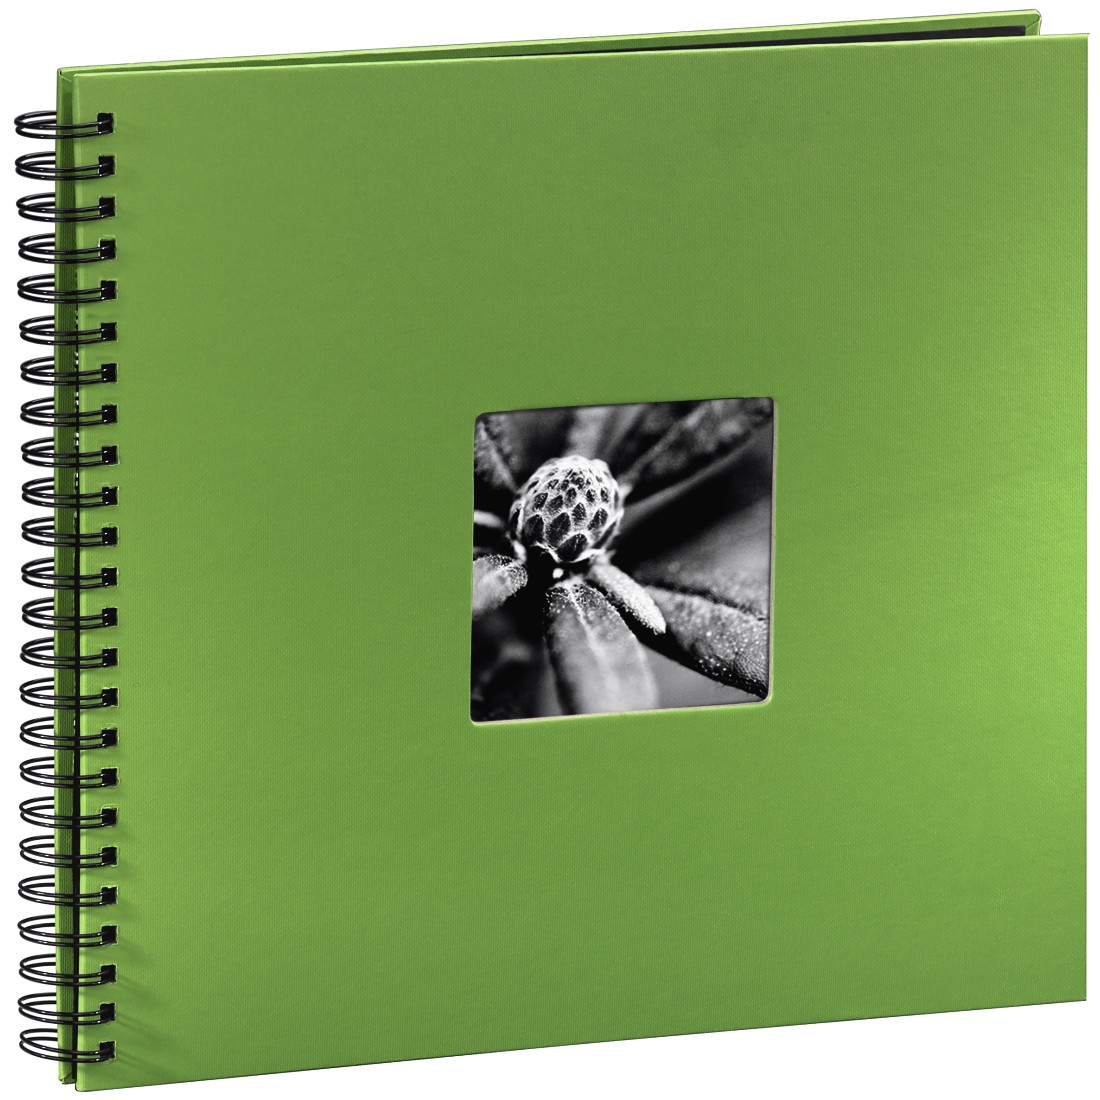 abx High-Res Image - Hama, Fine Art Spiralbound Album, 36 x 32 cm, 50 black pages, apple-green